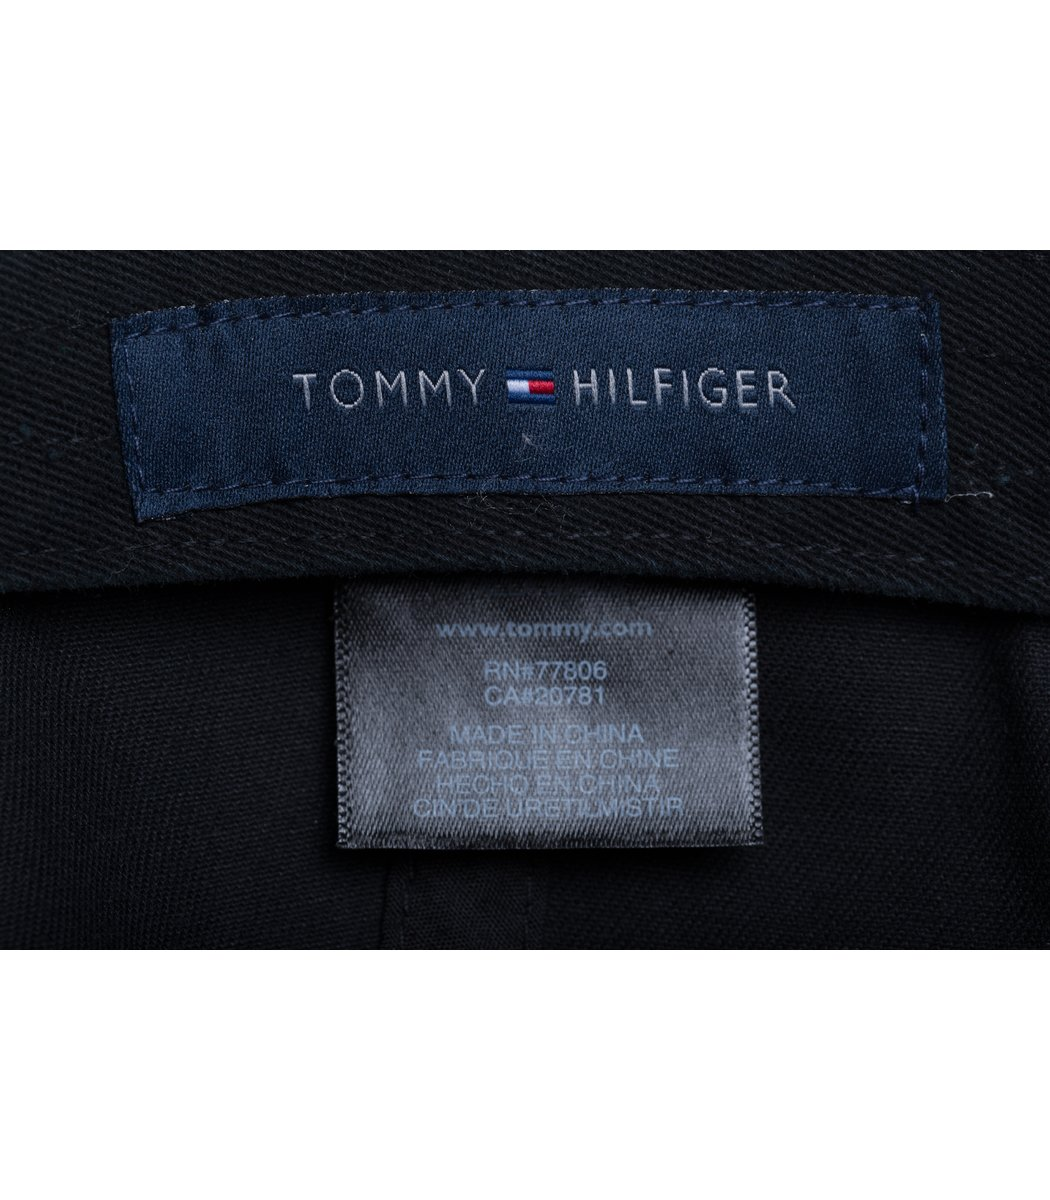 Кепка Tommy Hilfiger Small logo Черный